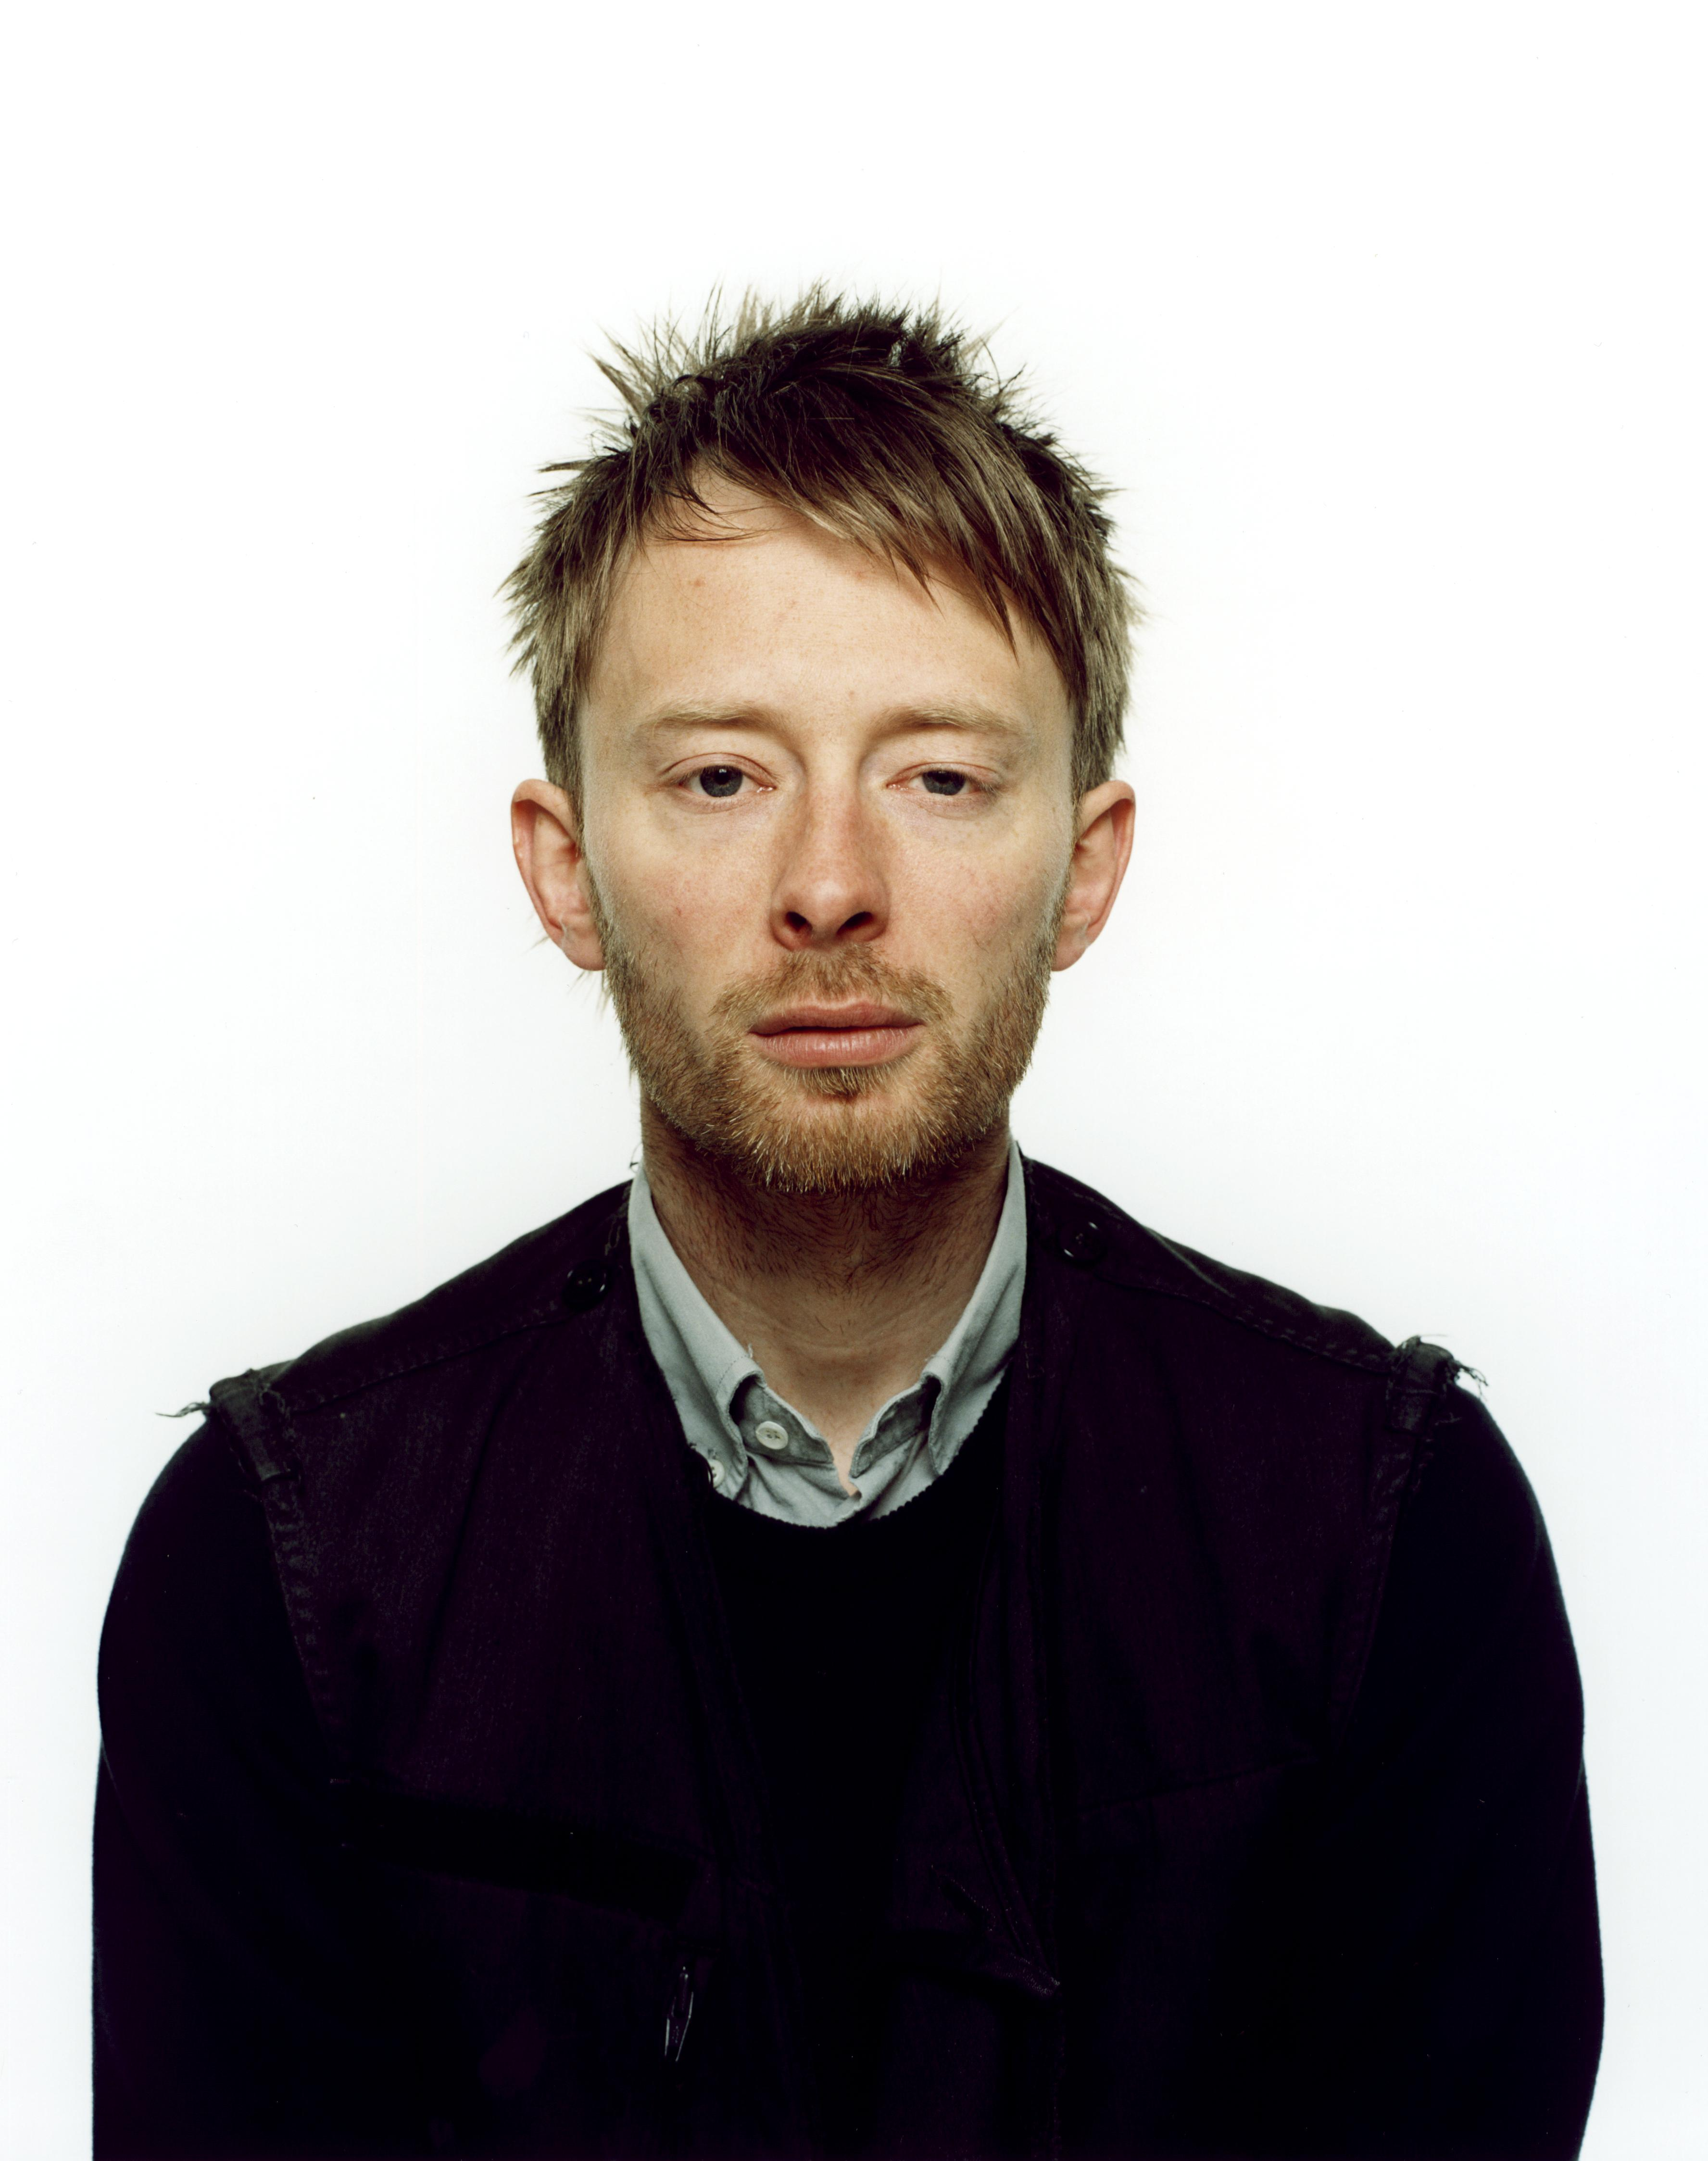 "//g-ec2.images-amazon.com/images/G/01/music/Radiohead_Thom.jpg"" cannot be displayed, because it contains errors."